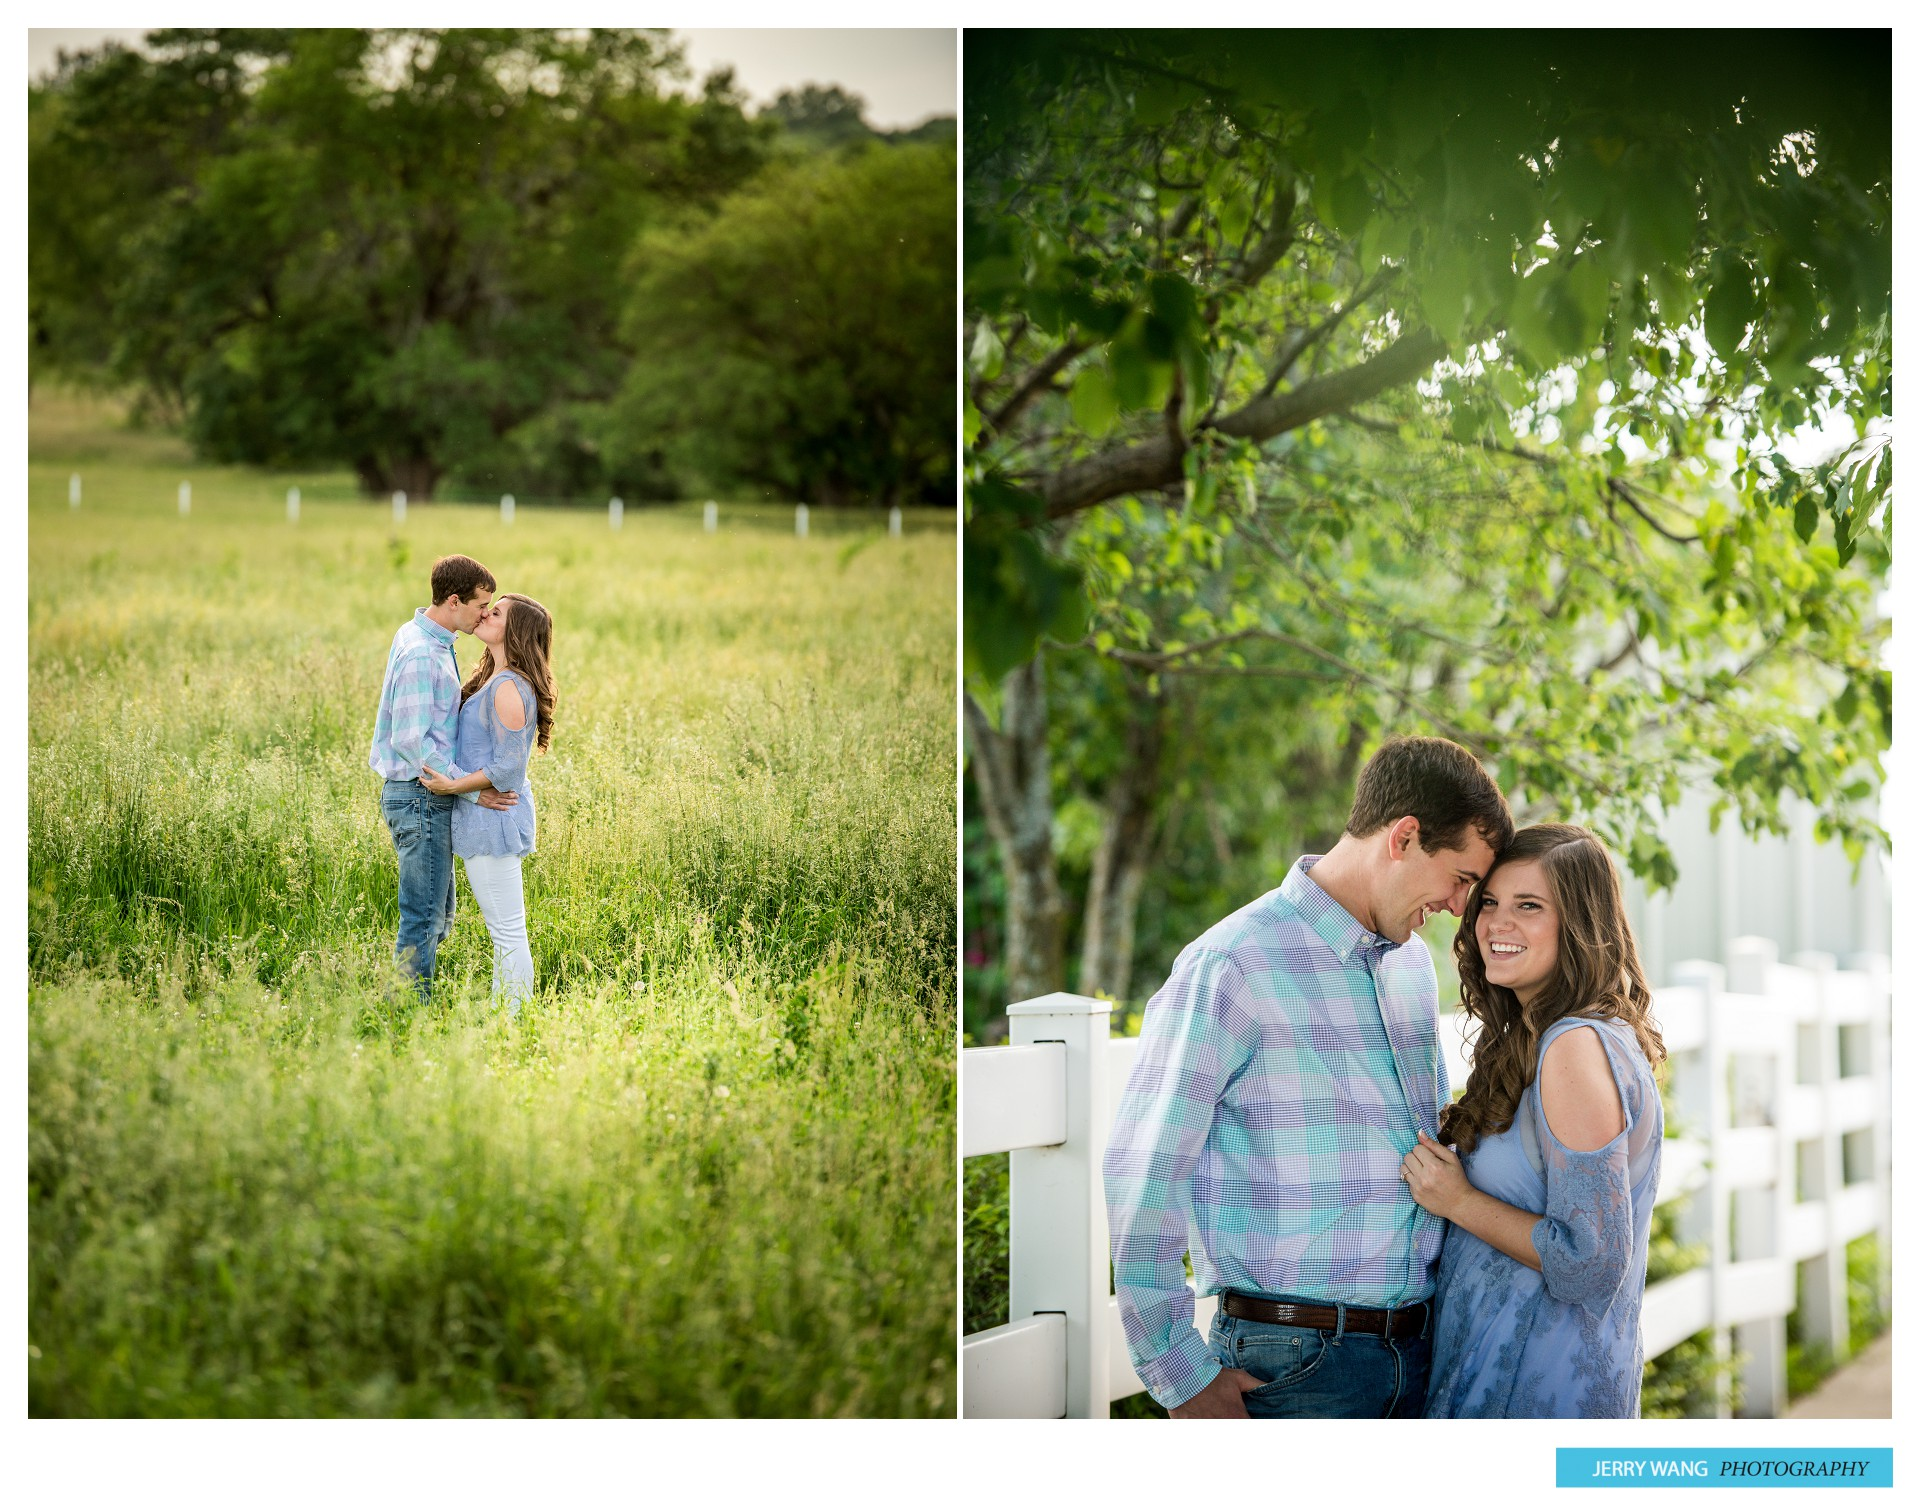 S&B_Spring_Hills_Kansas_Hickory_Creek_Engagement_Session 3